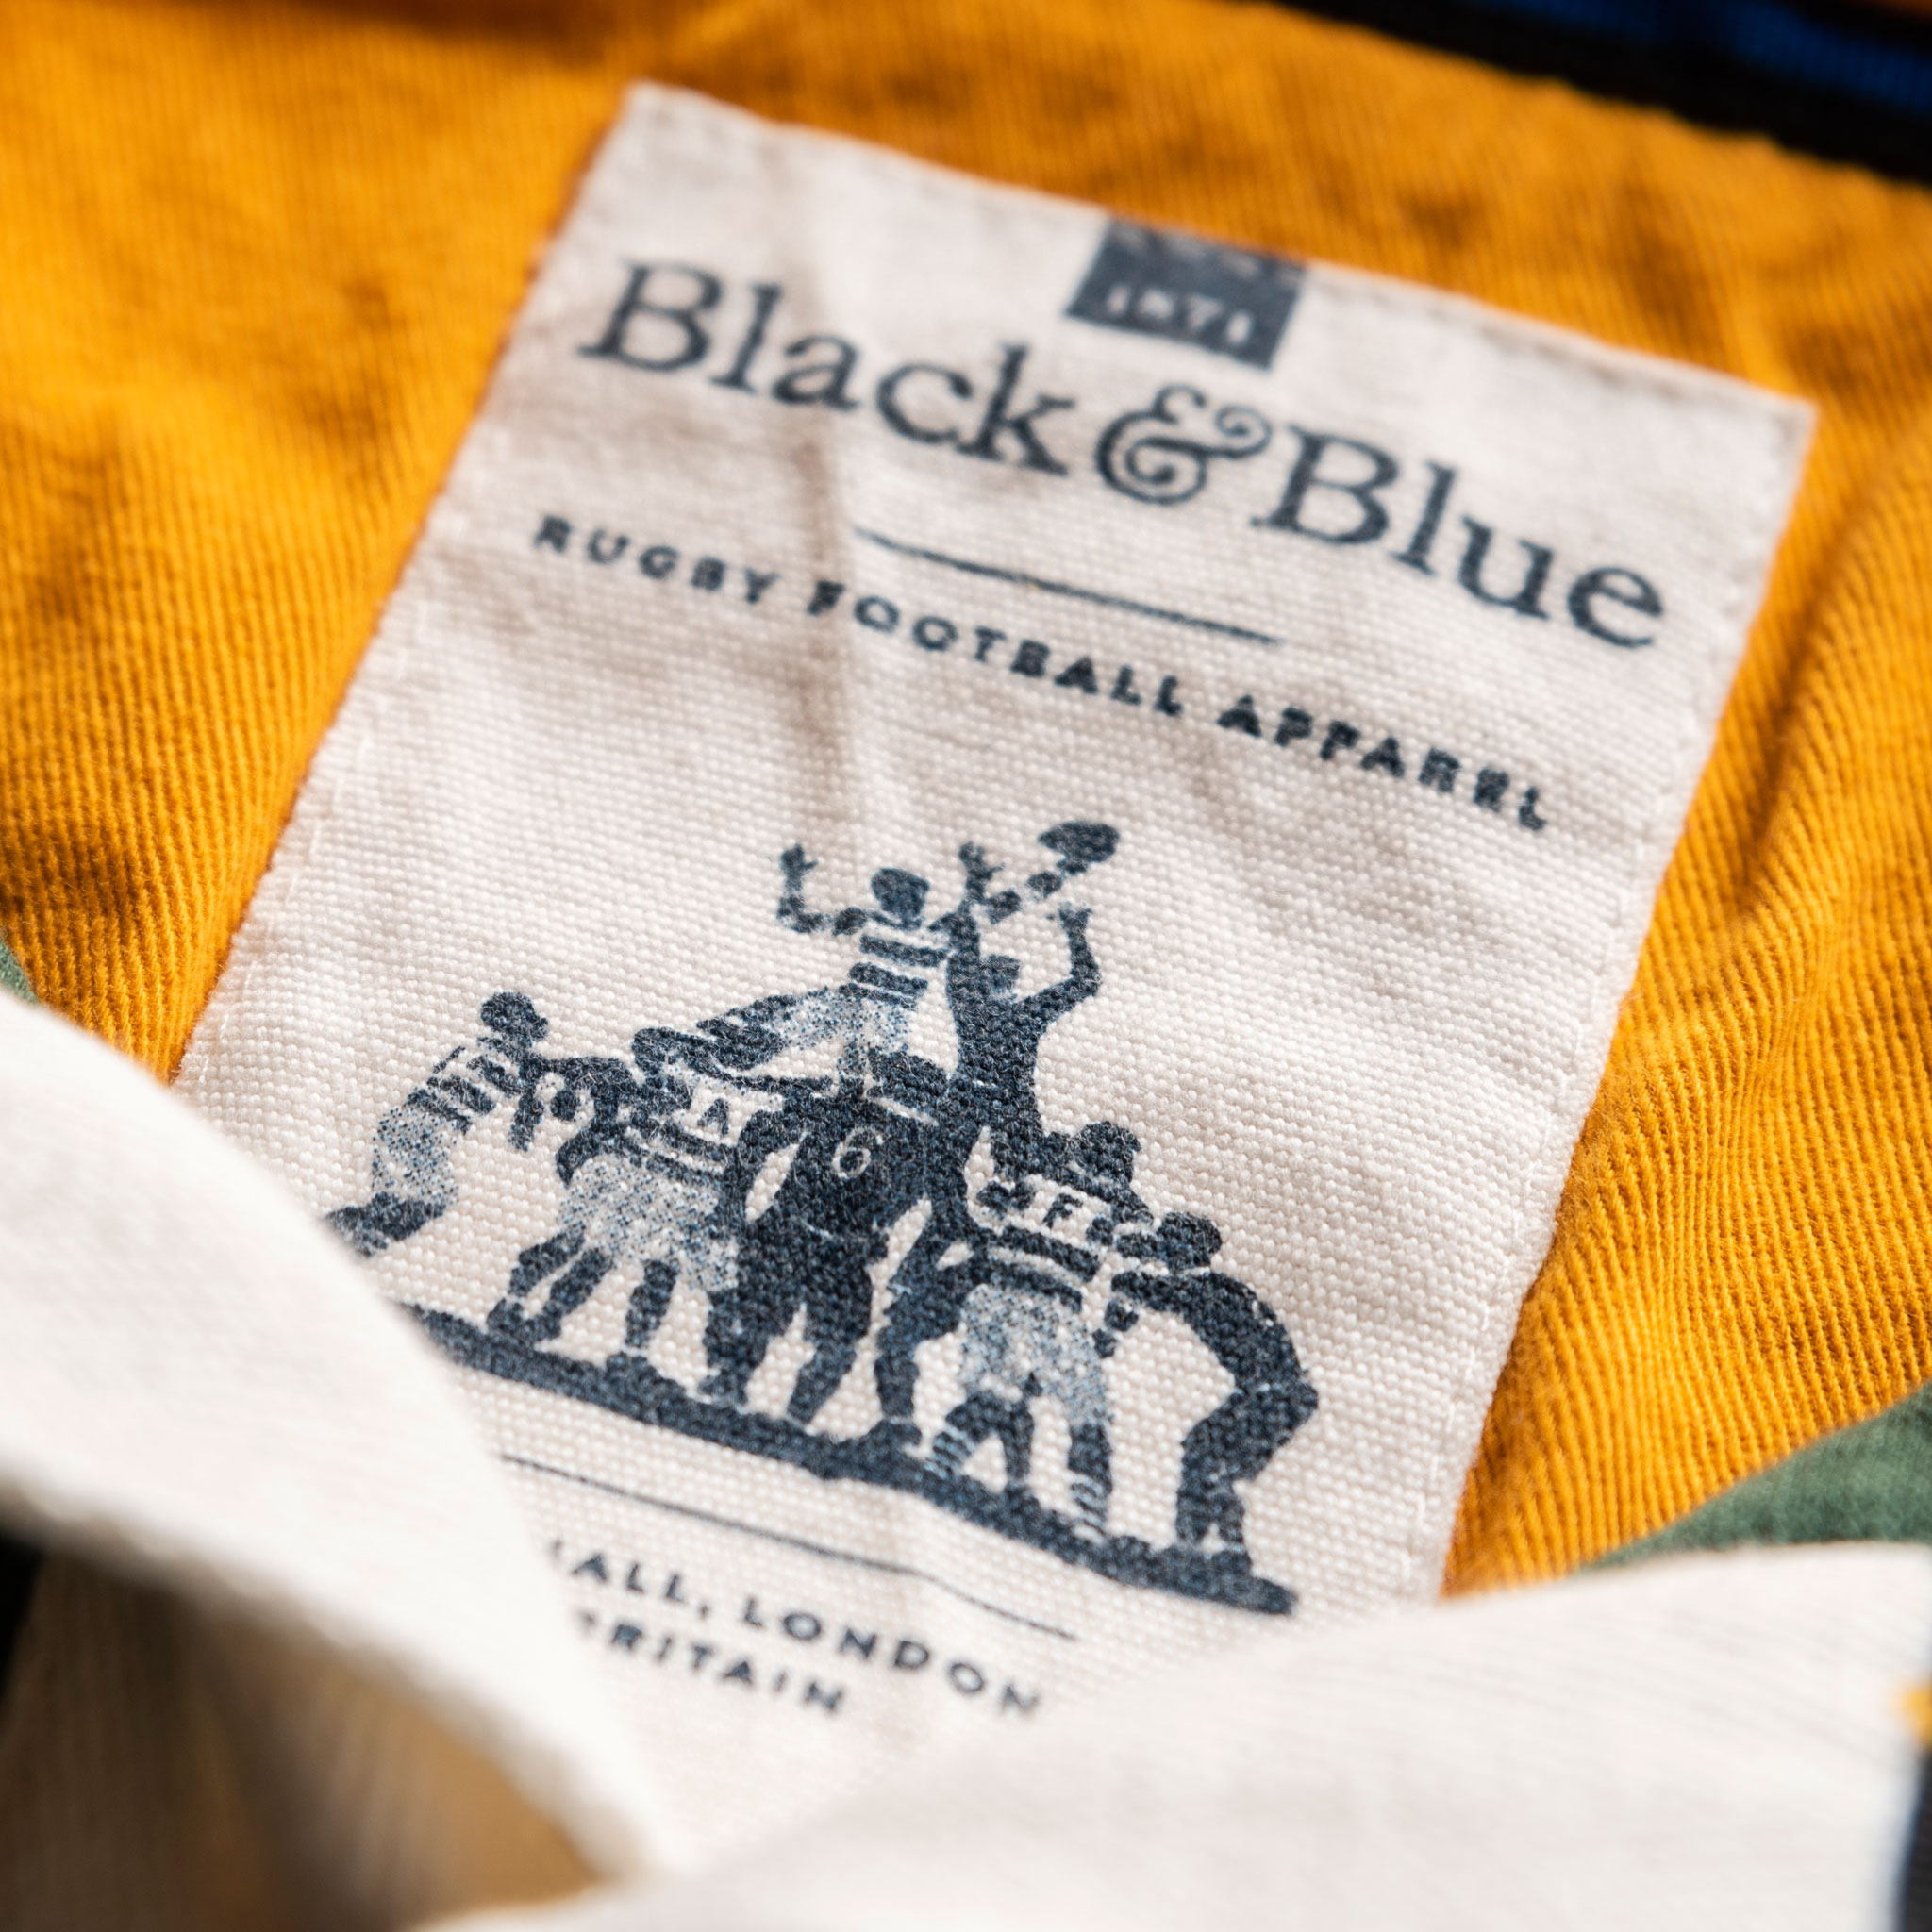 South Africa 1891 Vintage Rugby Shirt_BB Label